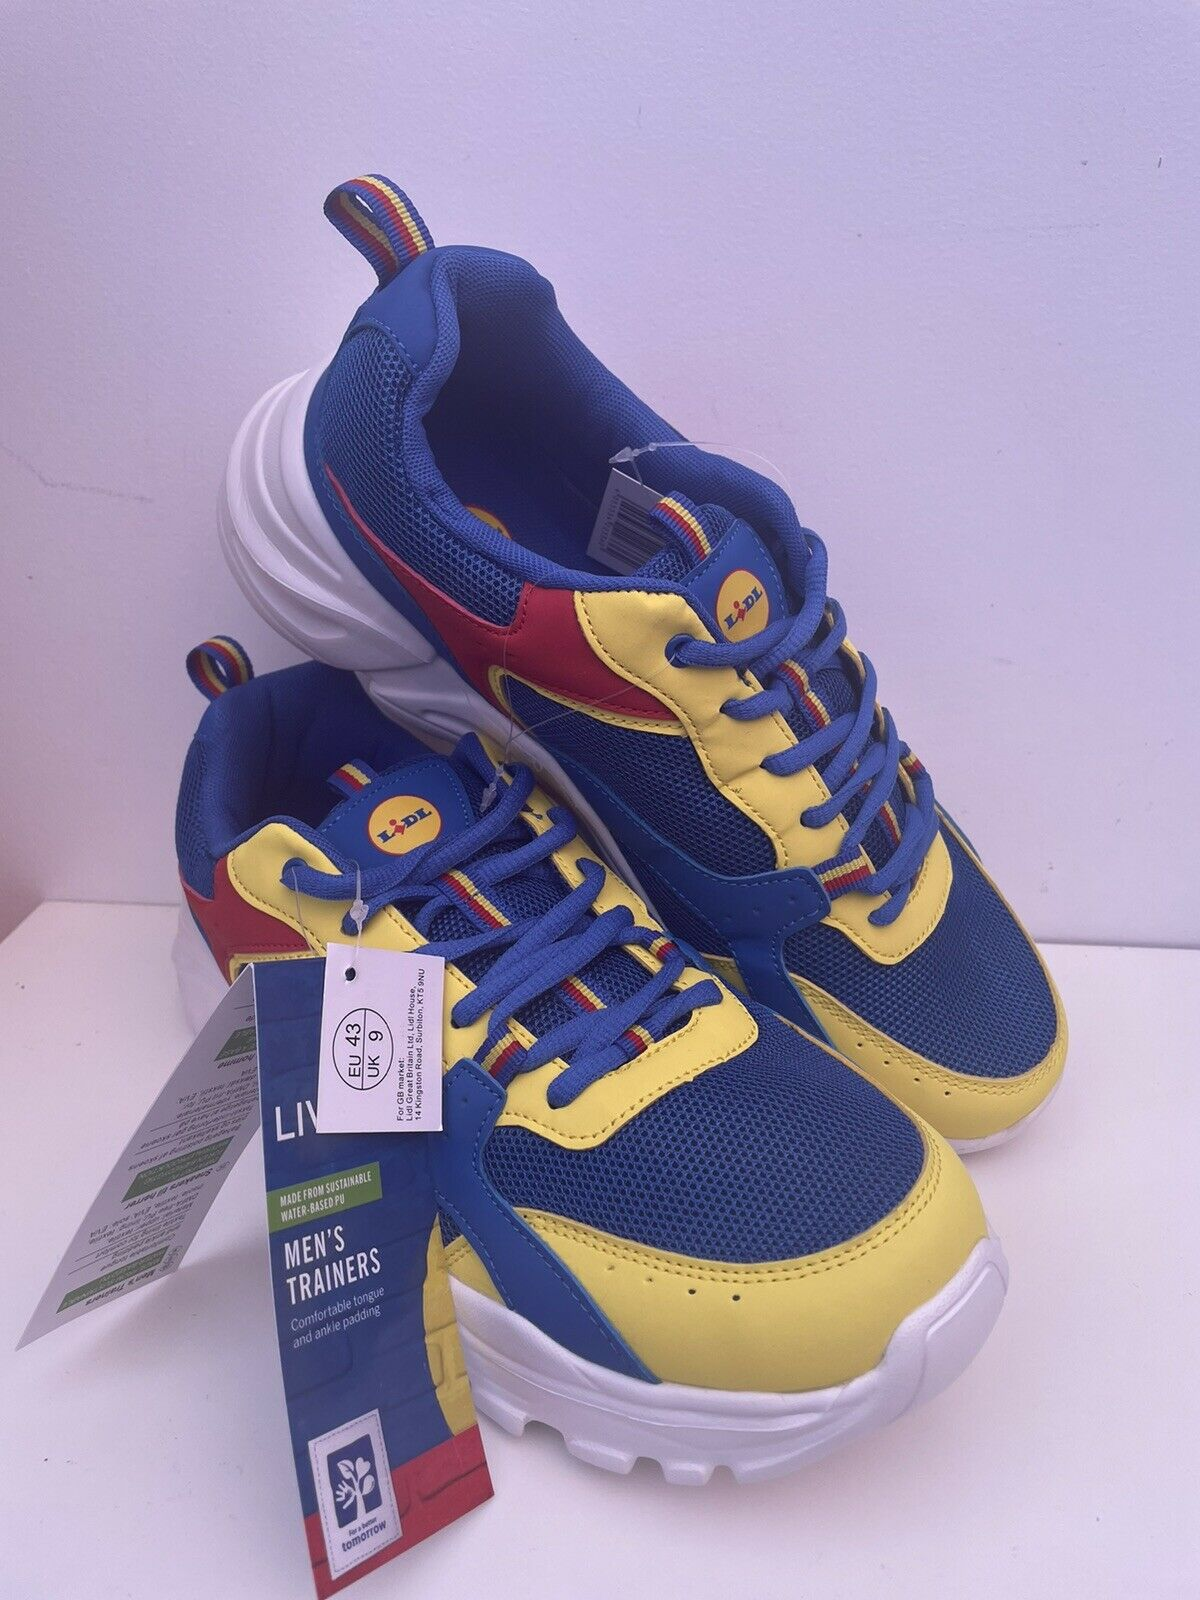 Men's Lidl Trainers UK Size 9 EU Size 43 brand new with Tags Special Edition.